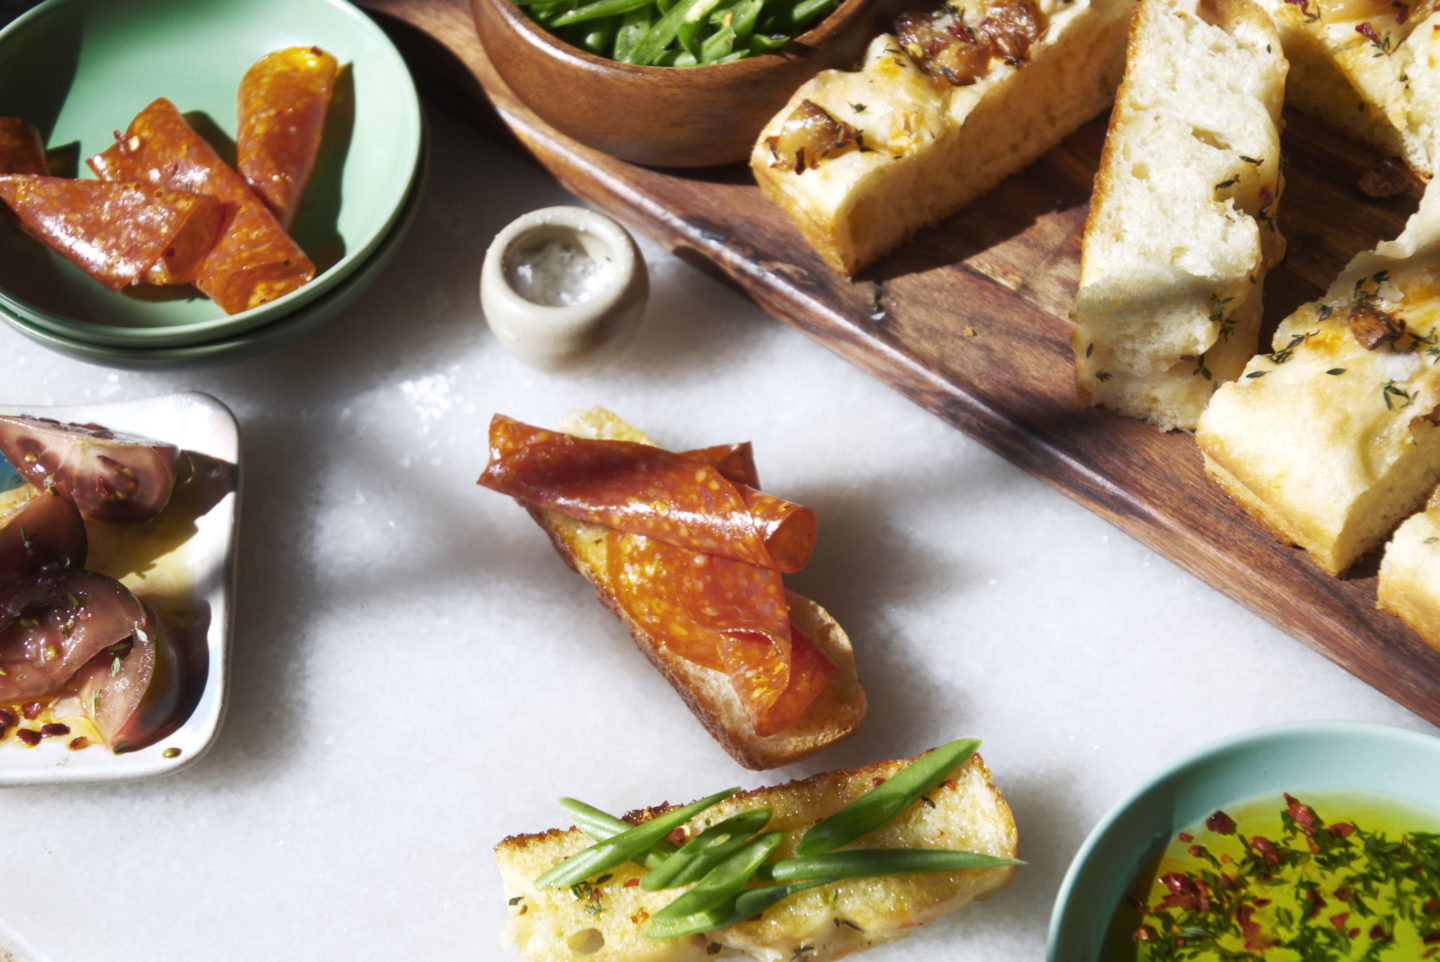 pepperoni open-faced focaccia sandwiches with tomato and green beans. Easy spring or summer meals